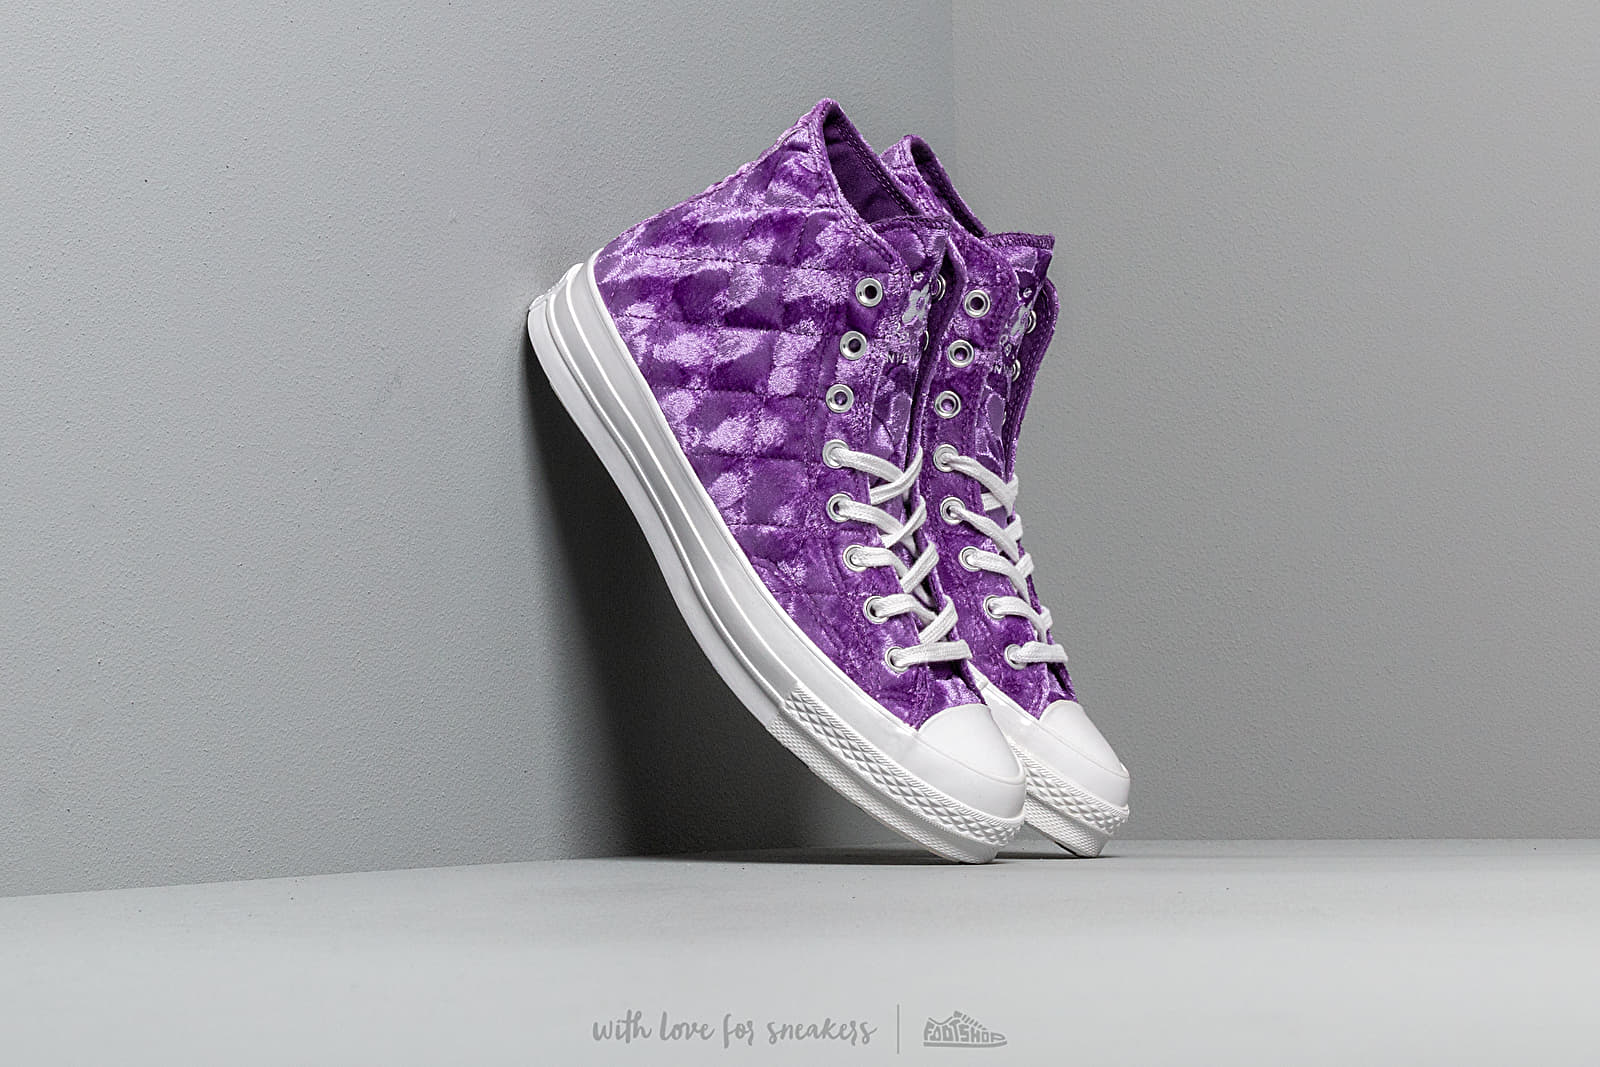 Converse x Golf Le Fleur Chuck Taylor All Star 70